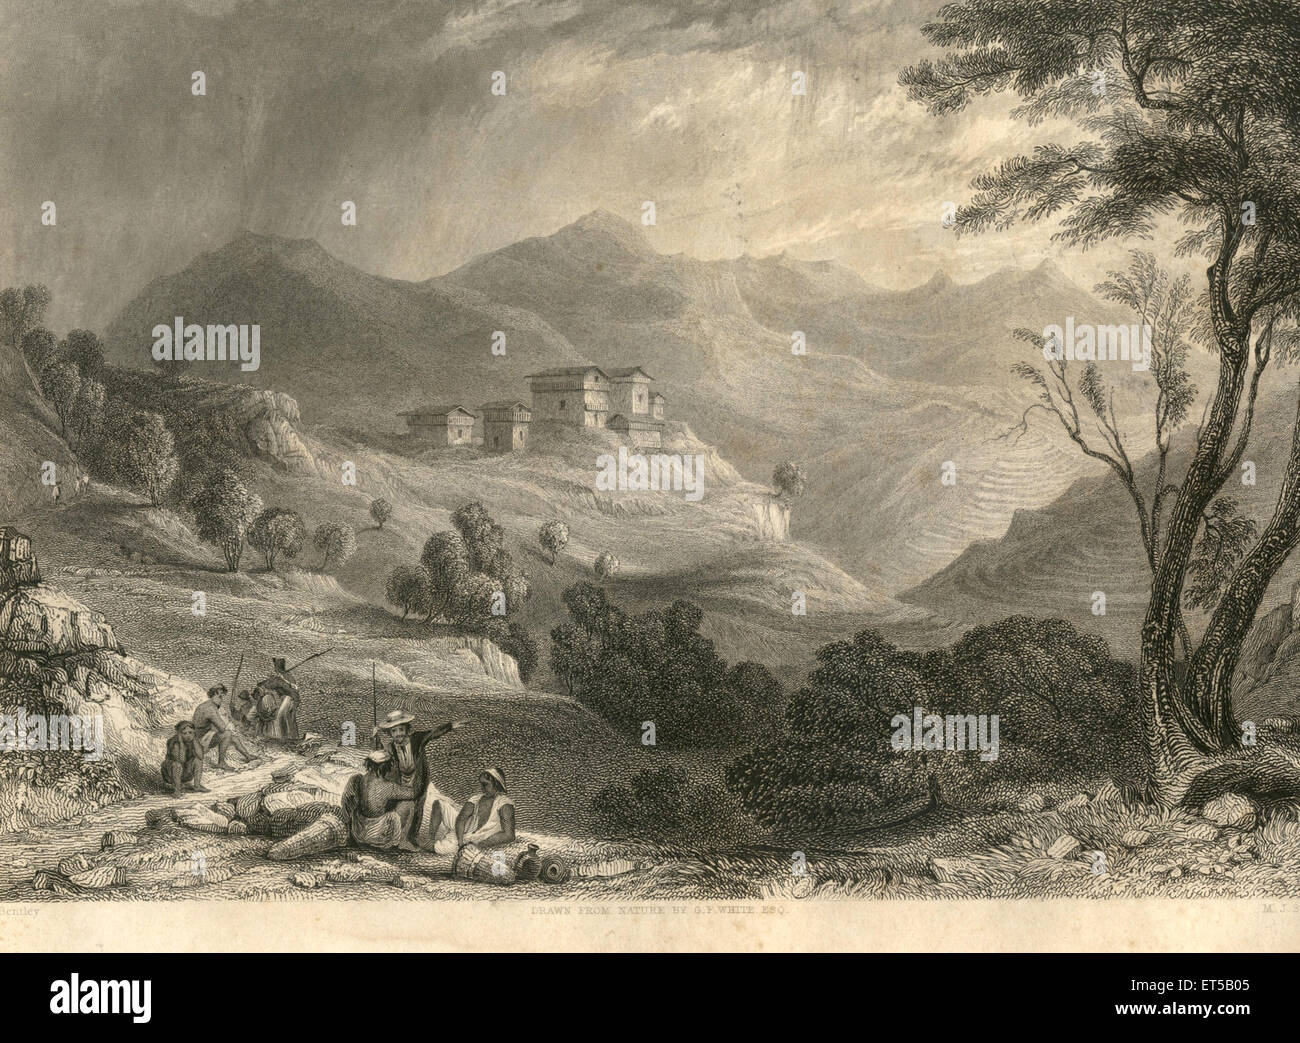 Lithographs Village of Naree ; India - Stock Image